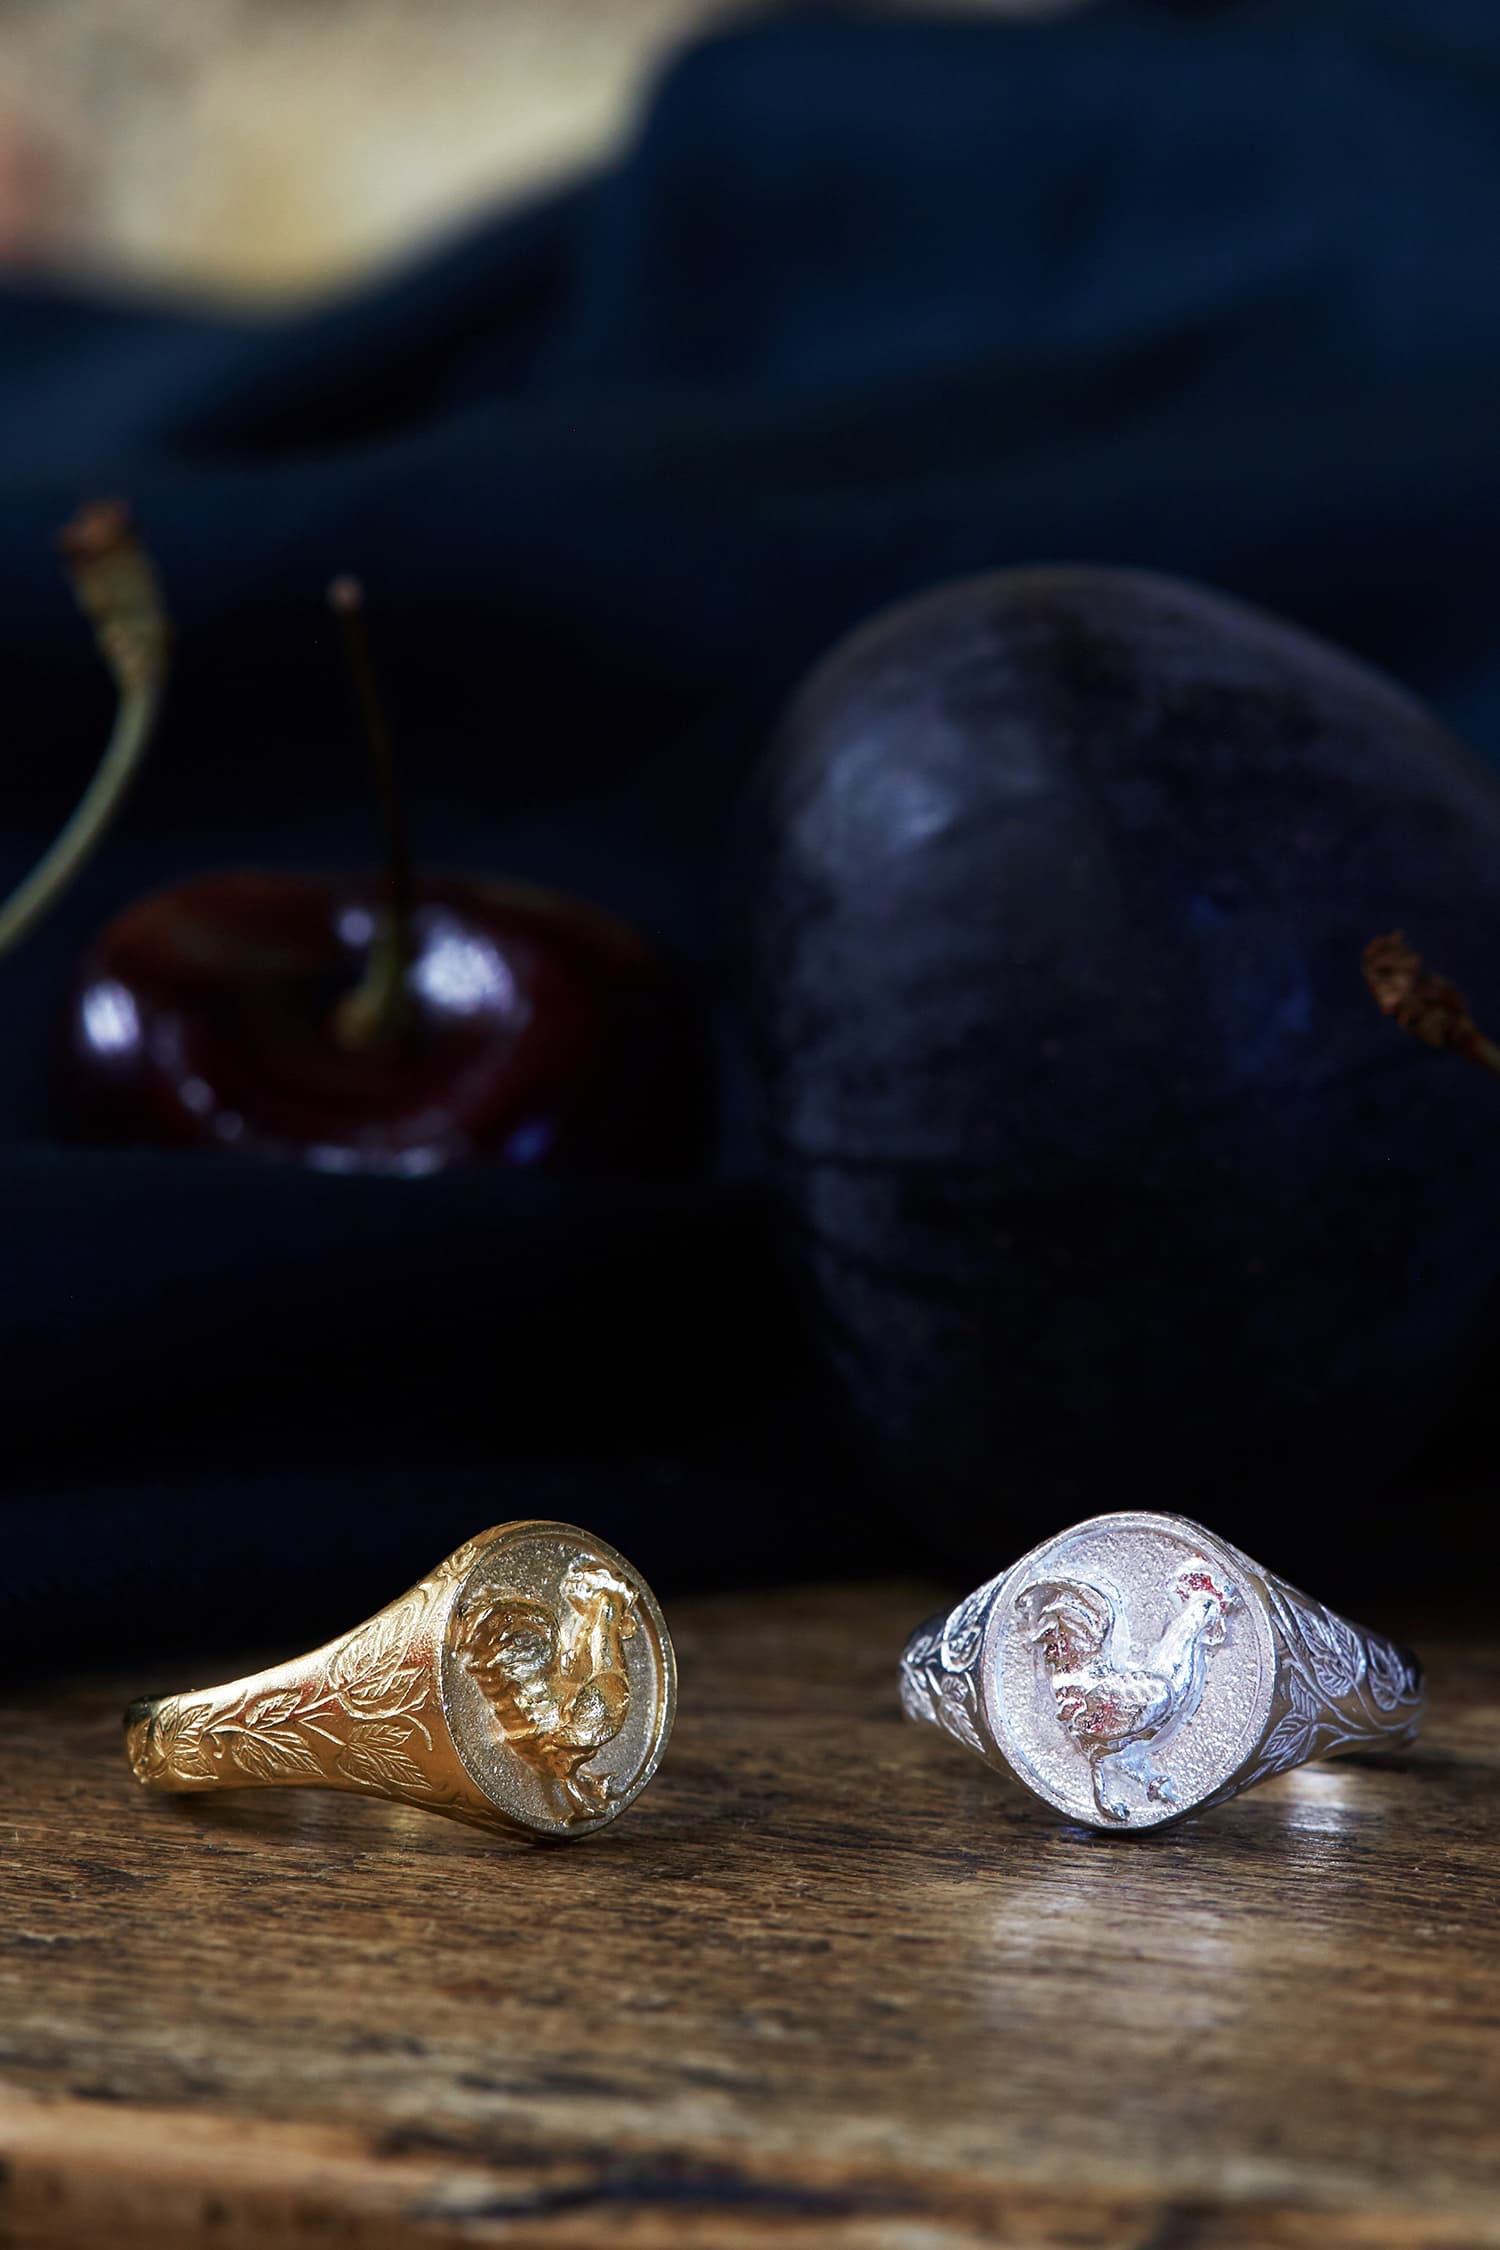 Ornately engraed signet ring with rooter in gold and silver